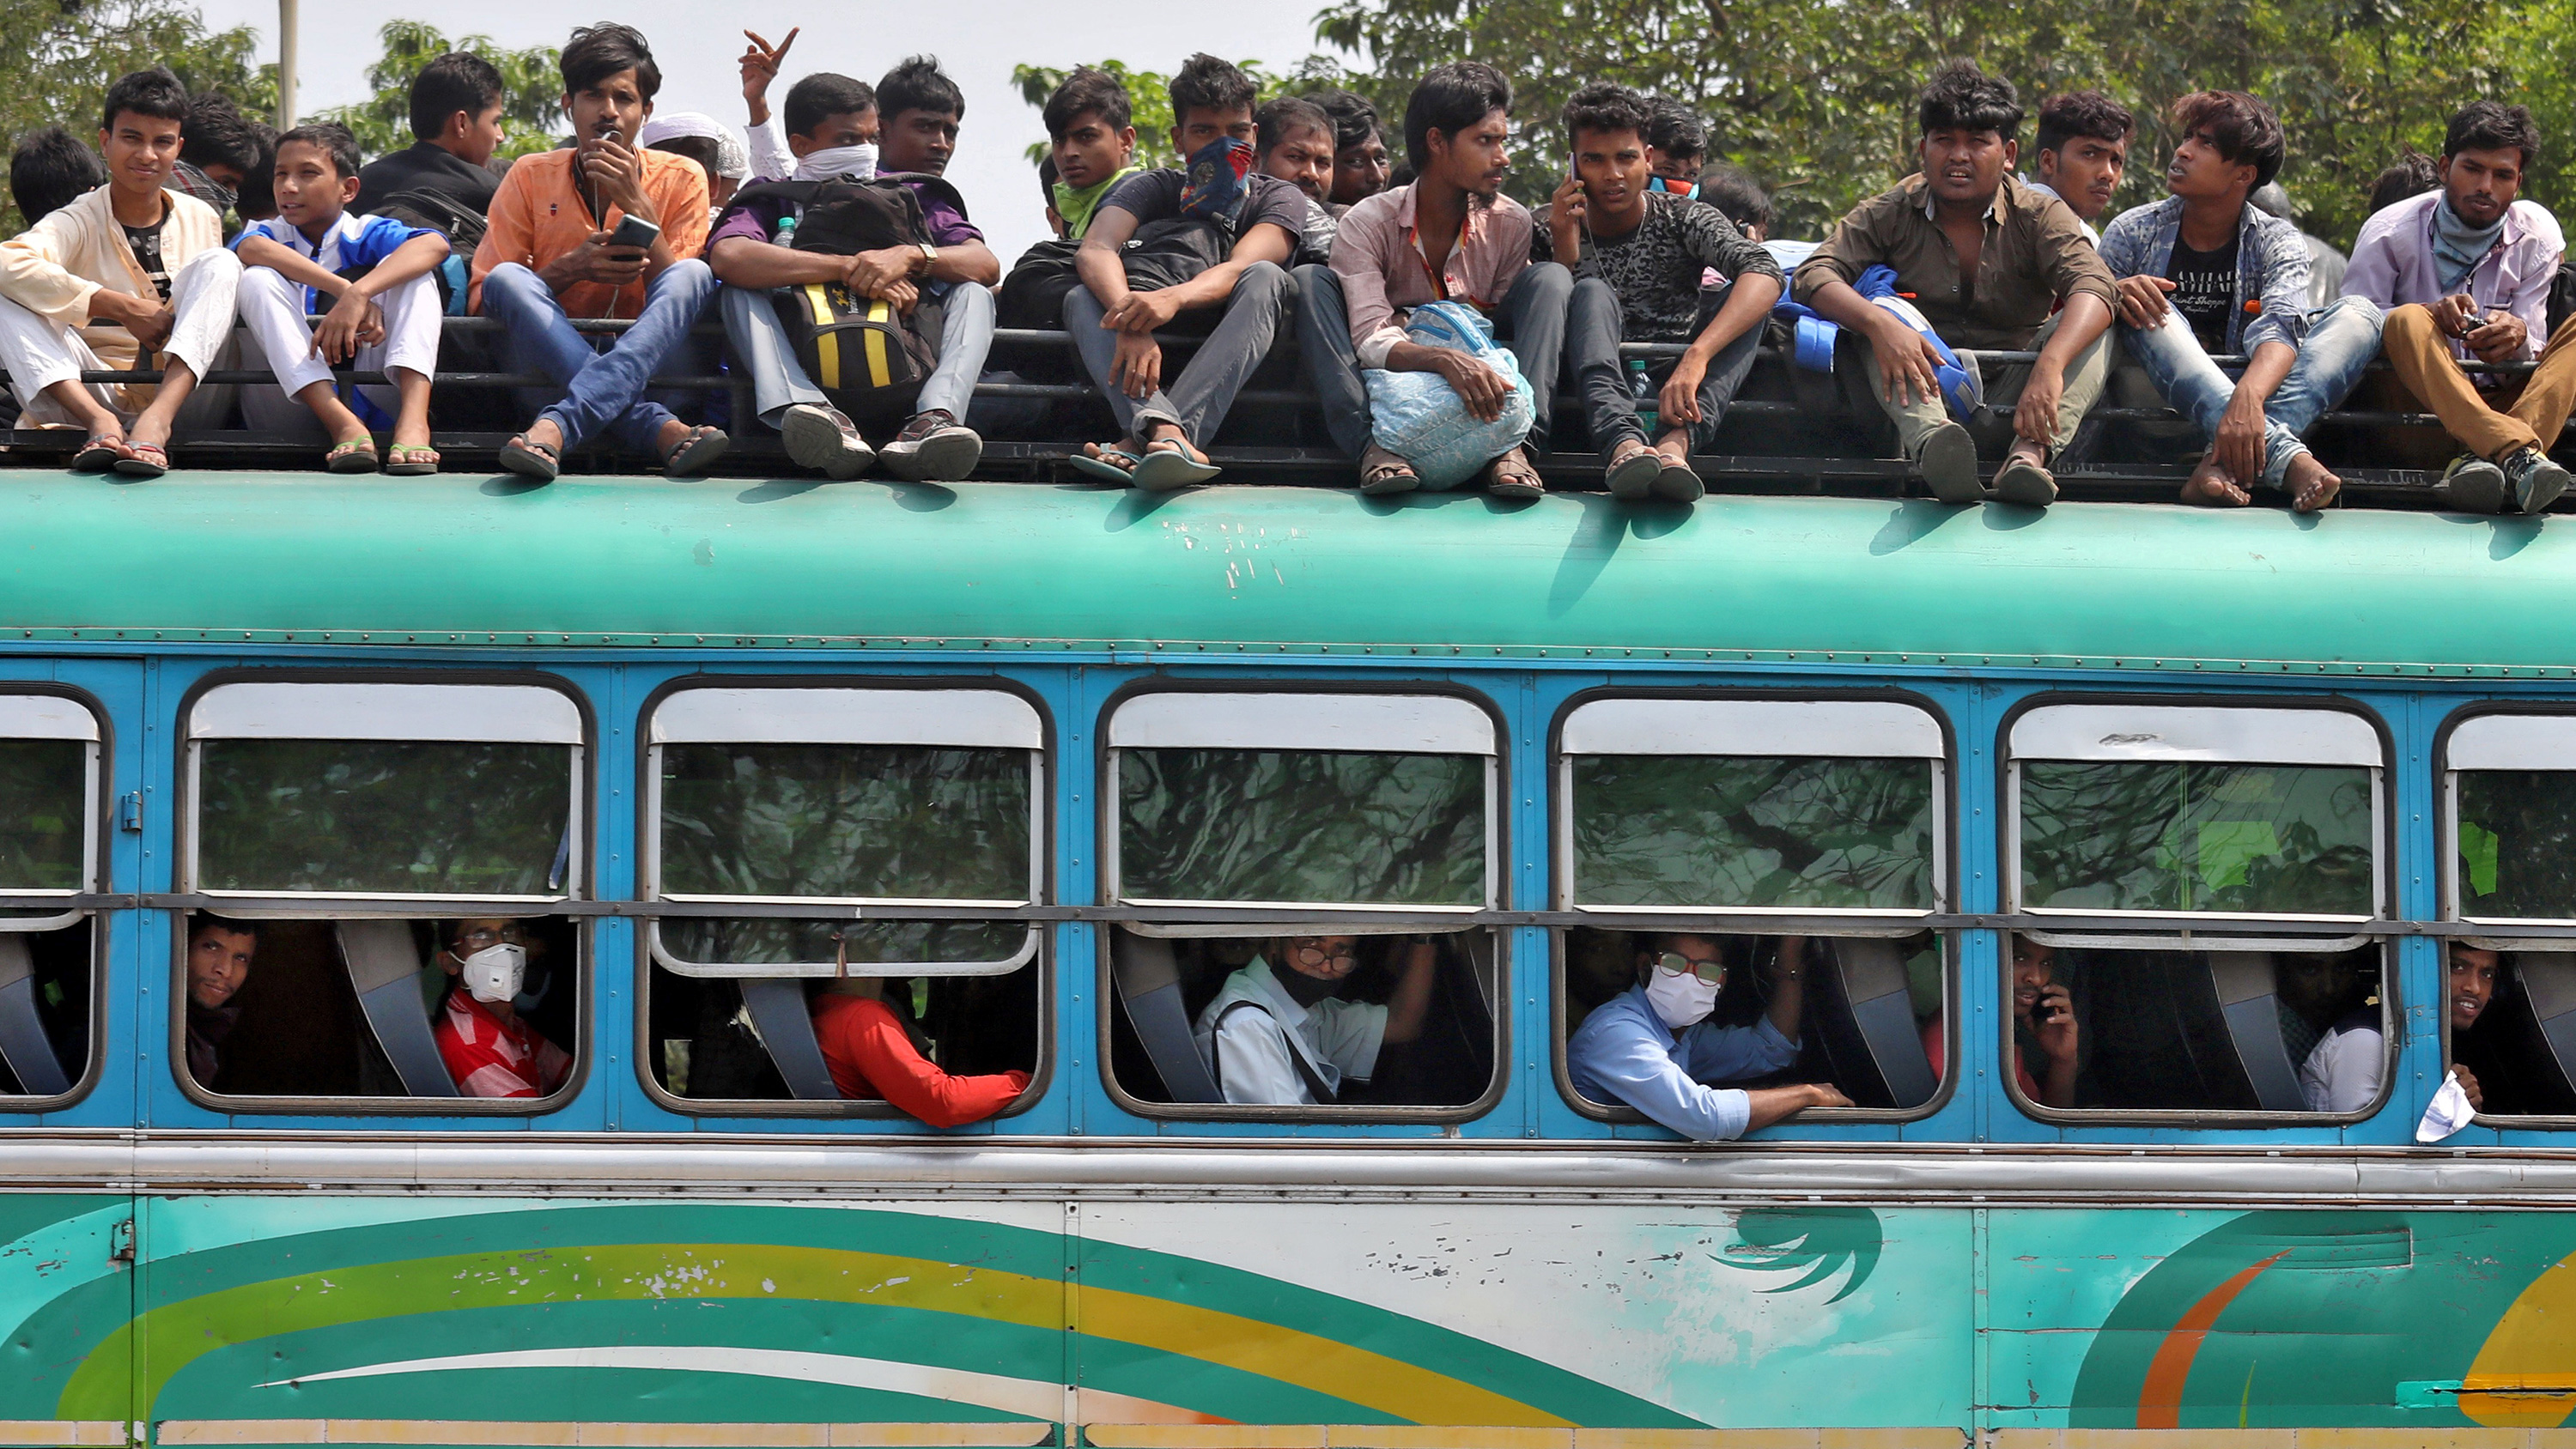 This is a stunning photo of a passenger bus with people sitting on top and in all the aisles inside.